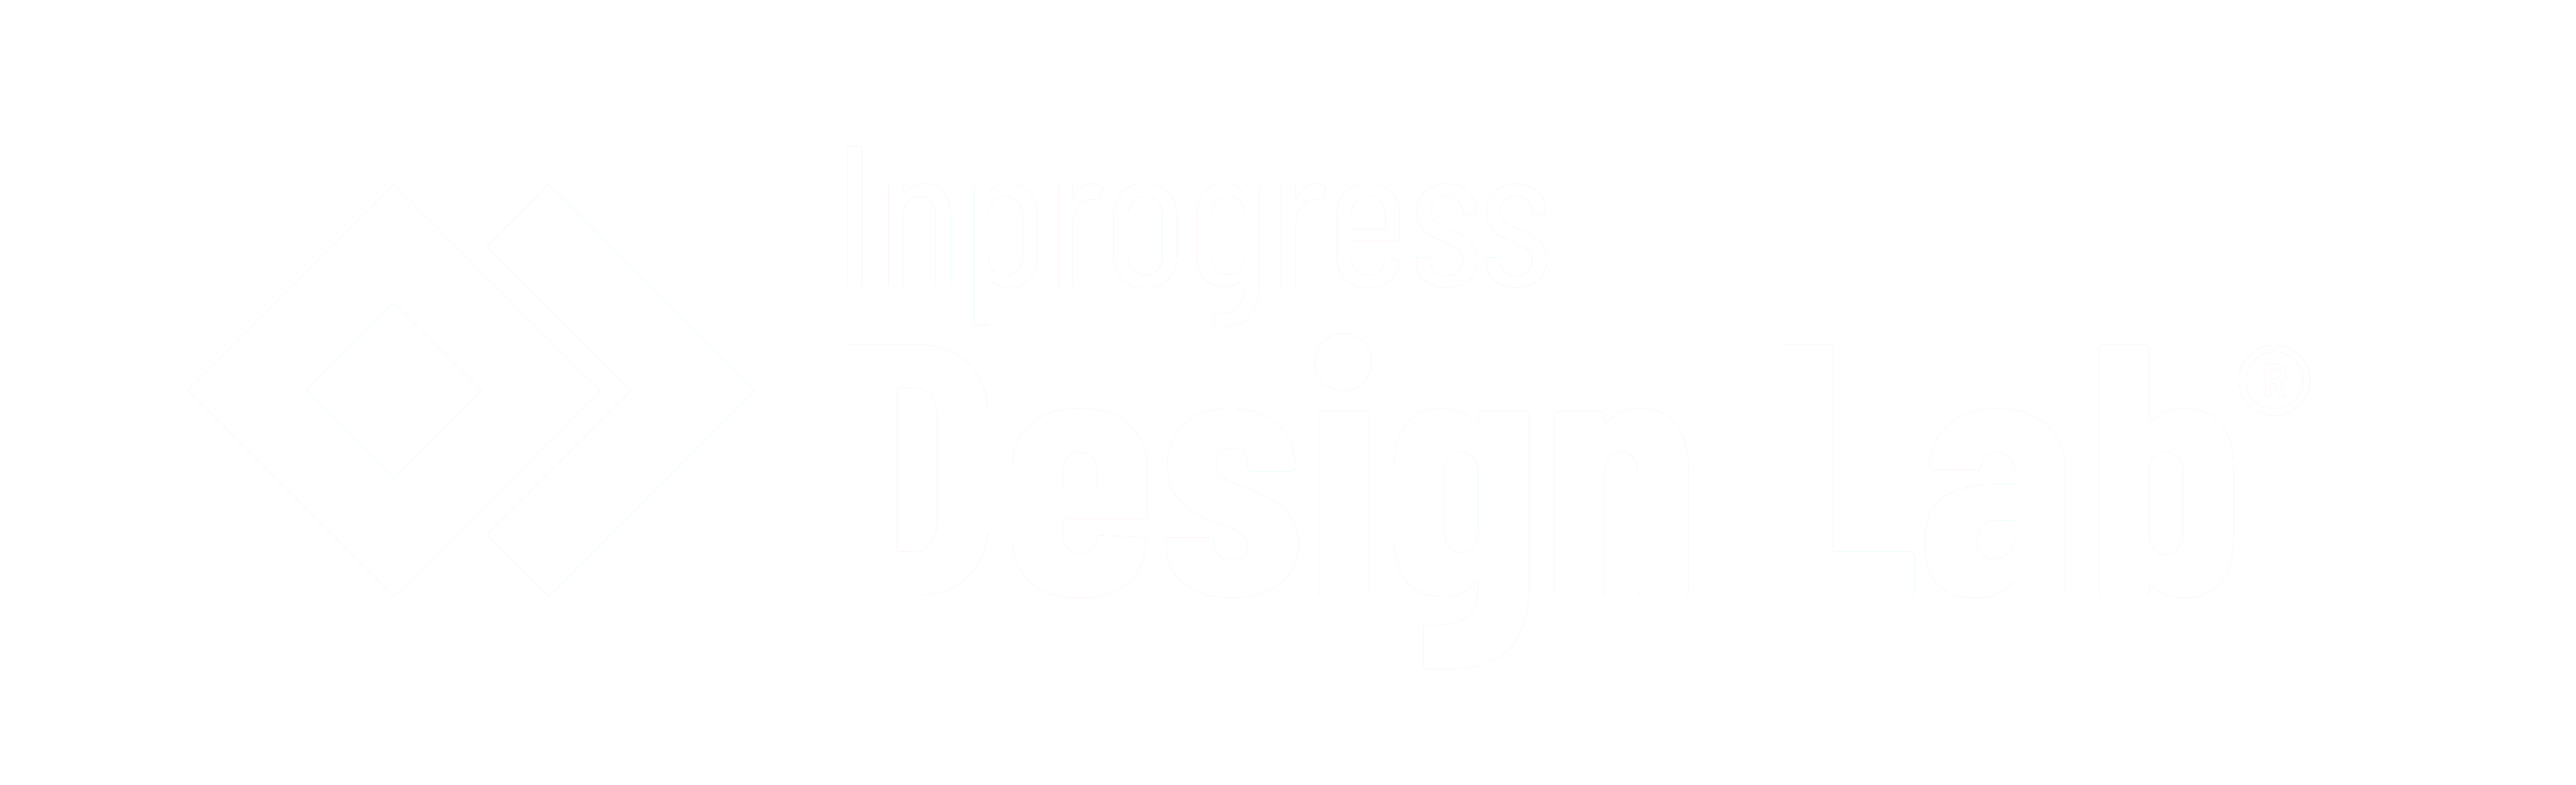 Inprogress Design Lab